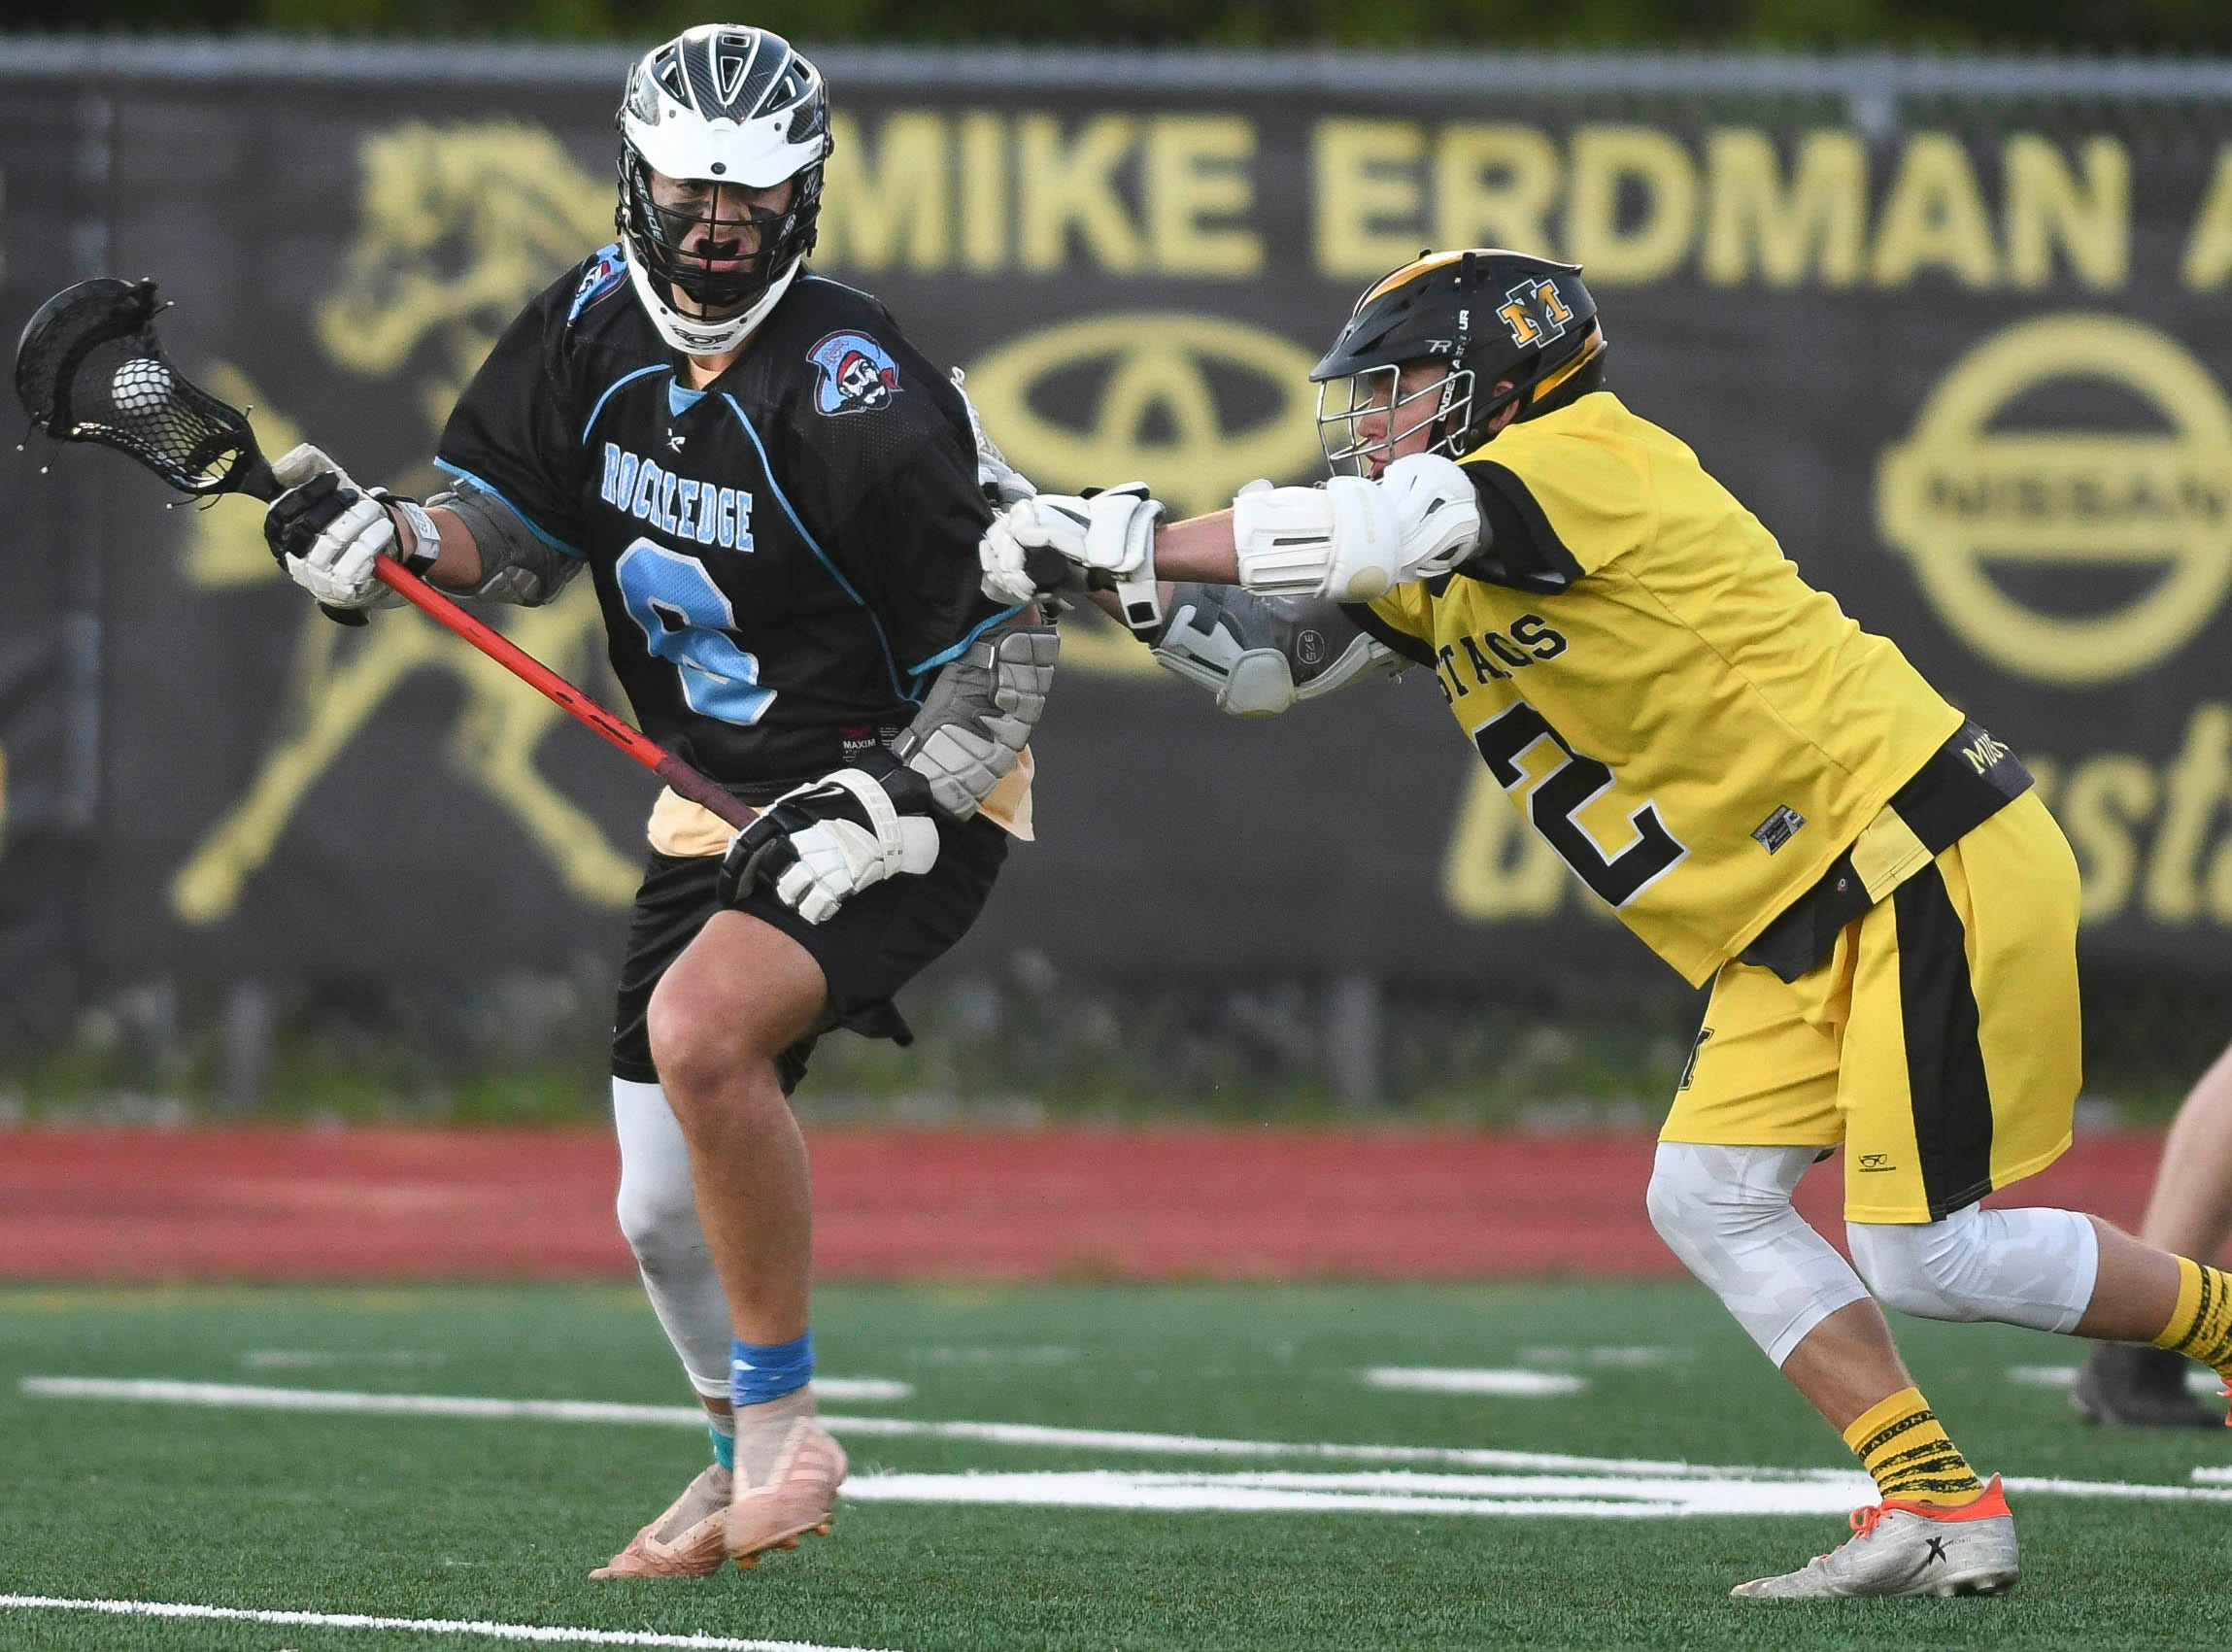 Alex Rahal of Rockledge is pursued by Sean Druck of Merritt Island during Wednesday's game.